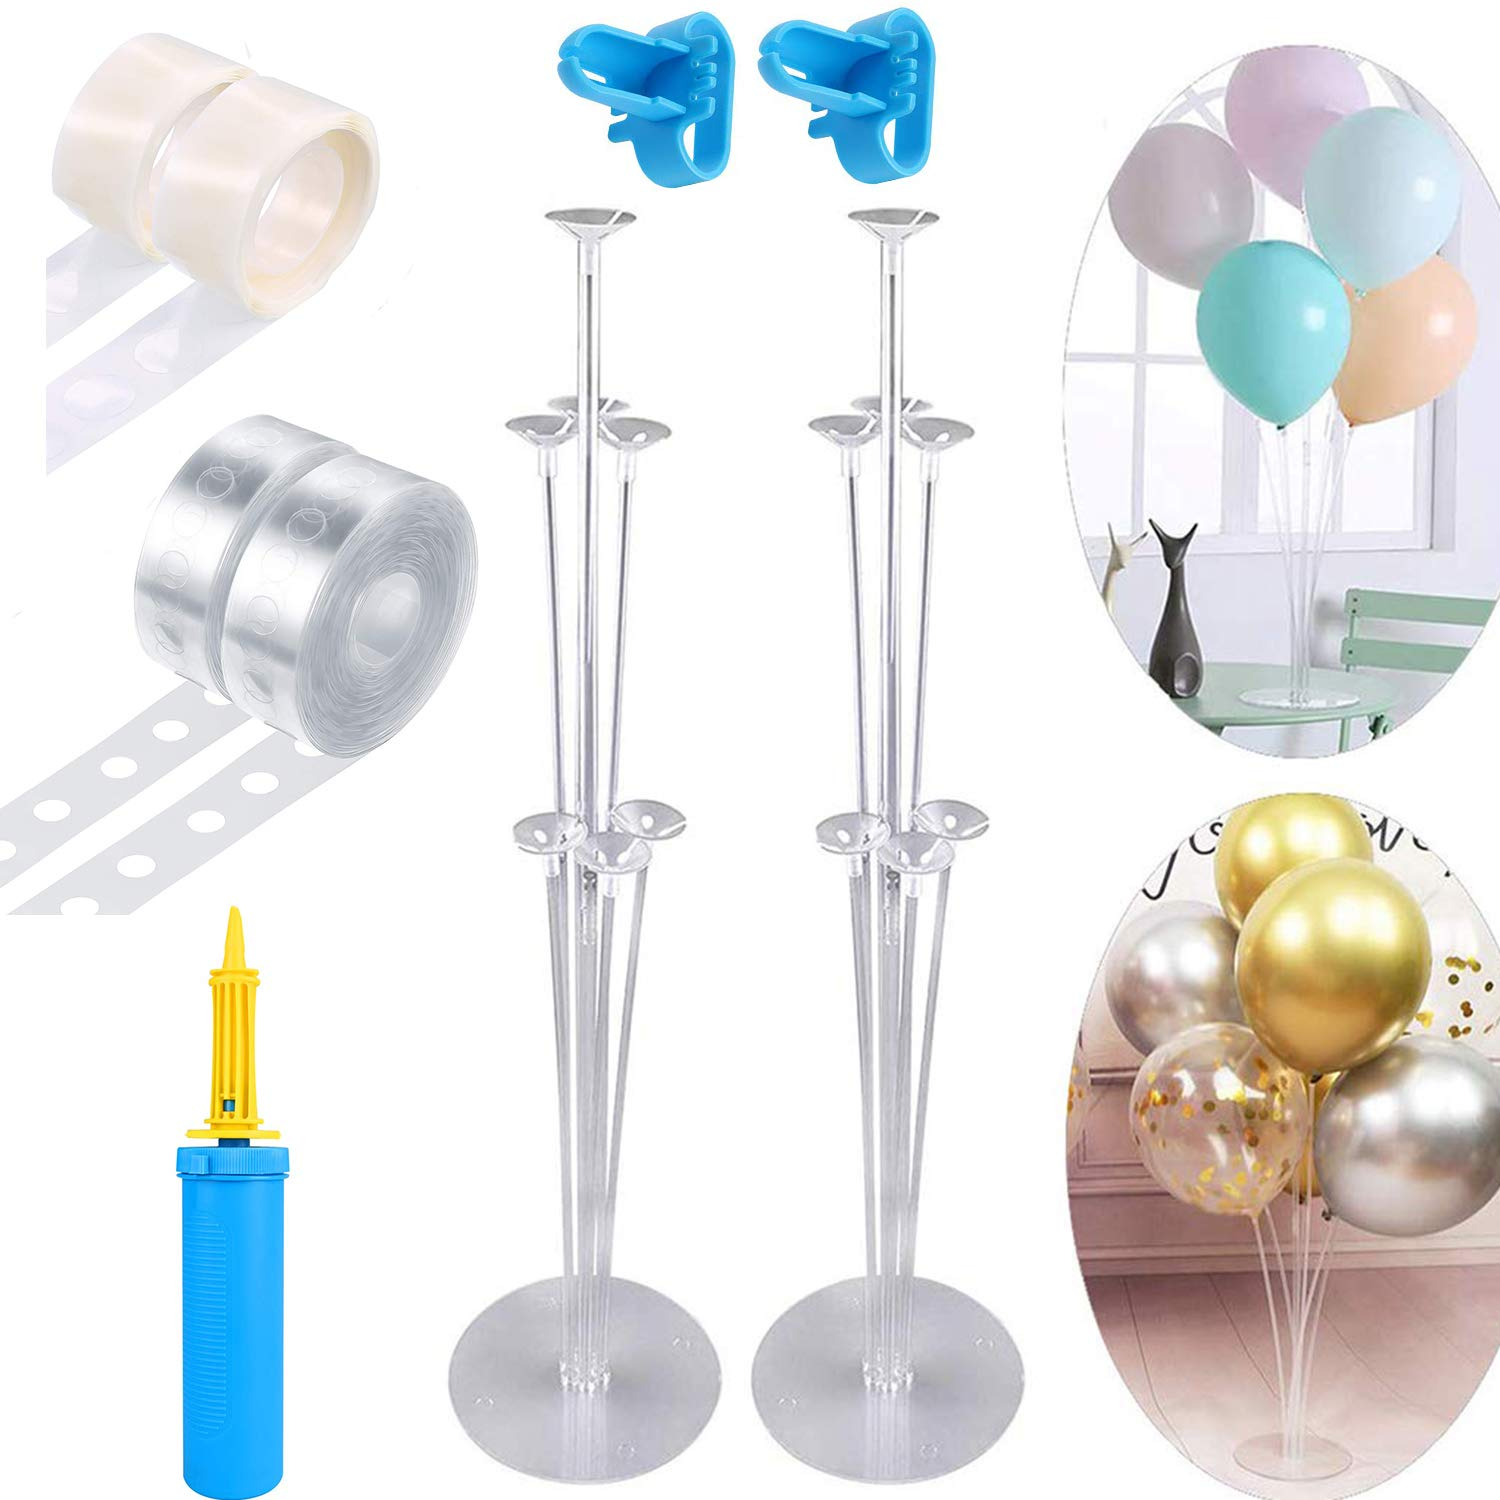 MUYEE Balloon Decorating Strip Kit - Best Choice for Balloon Arches, Balloon Columns, Balloon Garlands, Balloon Holders, Includes 2 Balloon Stand Kit, 200 Dot Glue , 1 Balloon Pumps ,2 Tying Tools for Party Wedding Birthday Xmas Baby Shower DIY